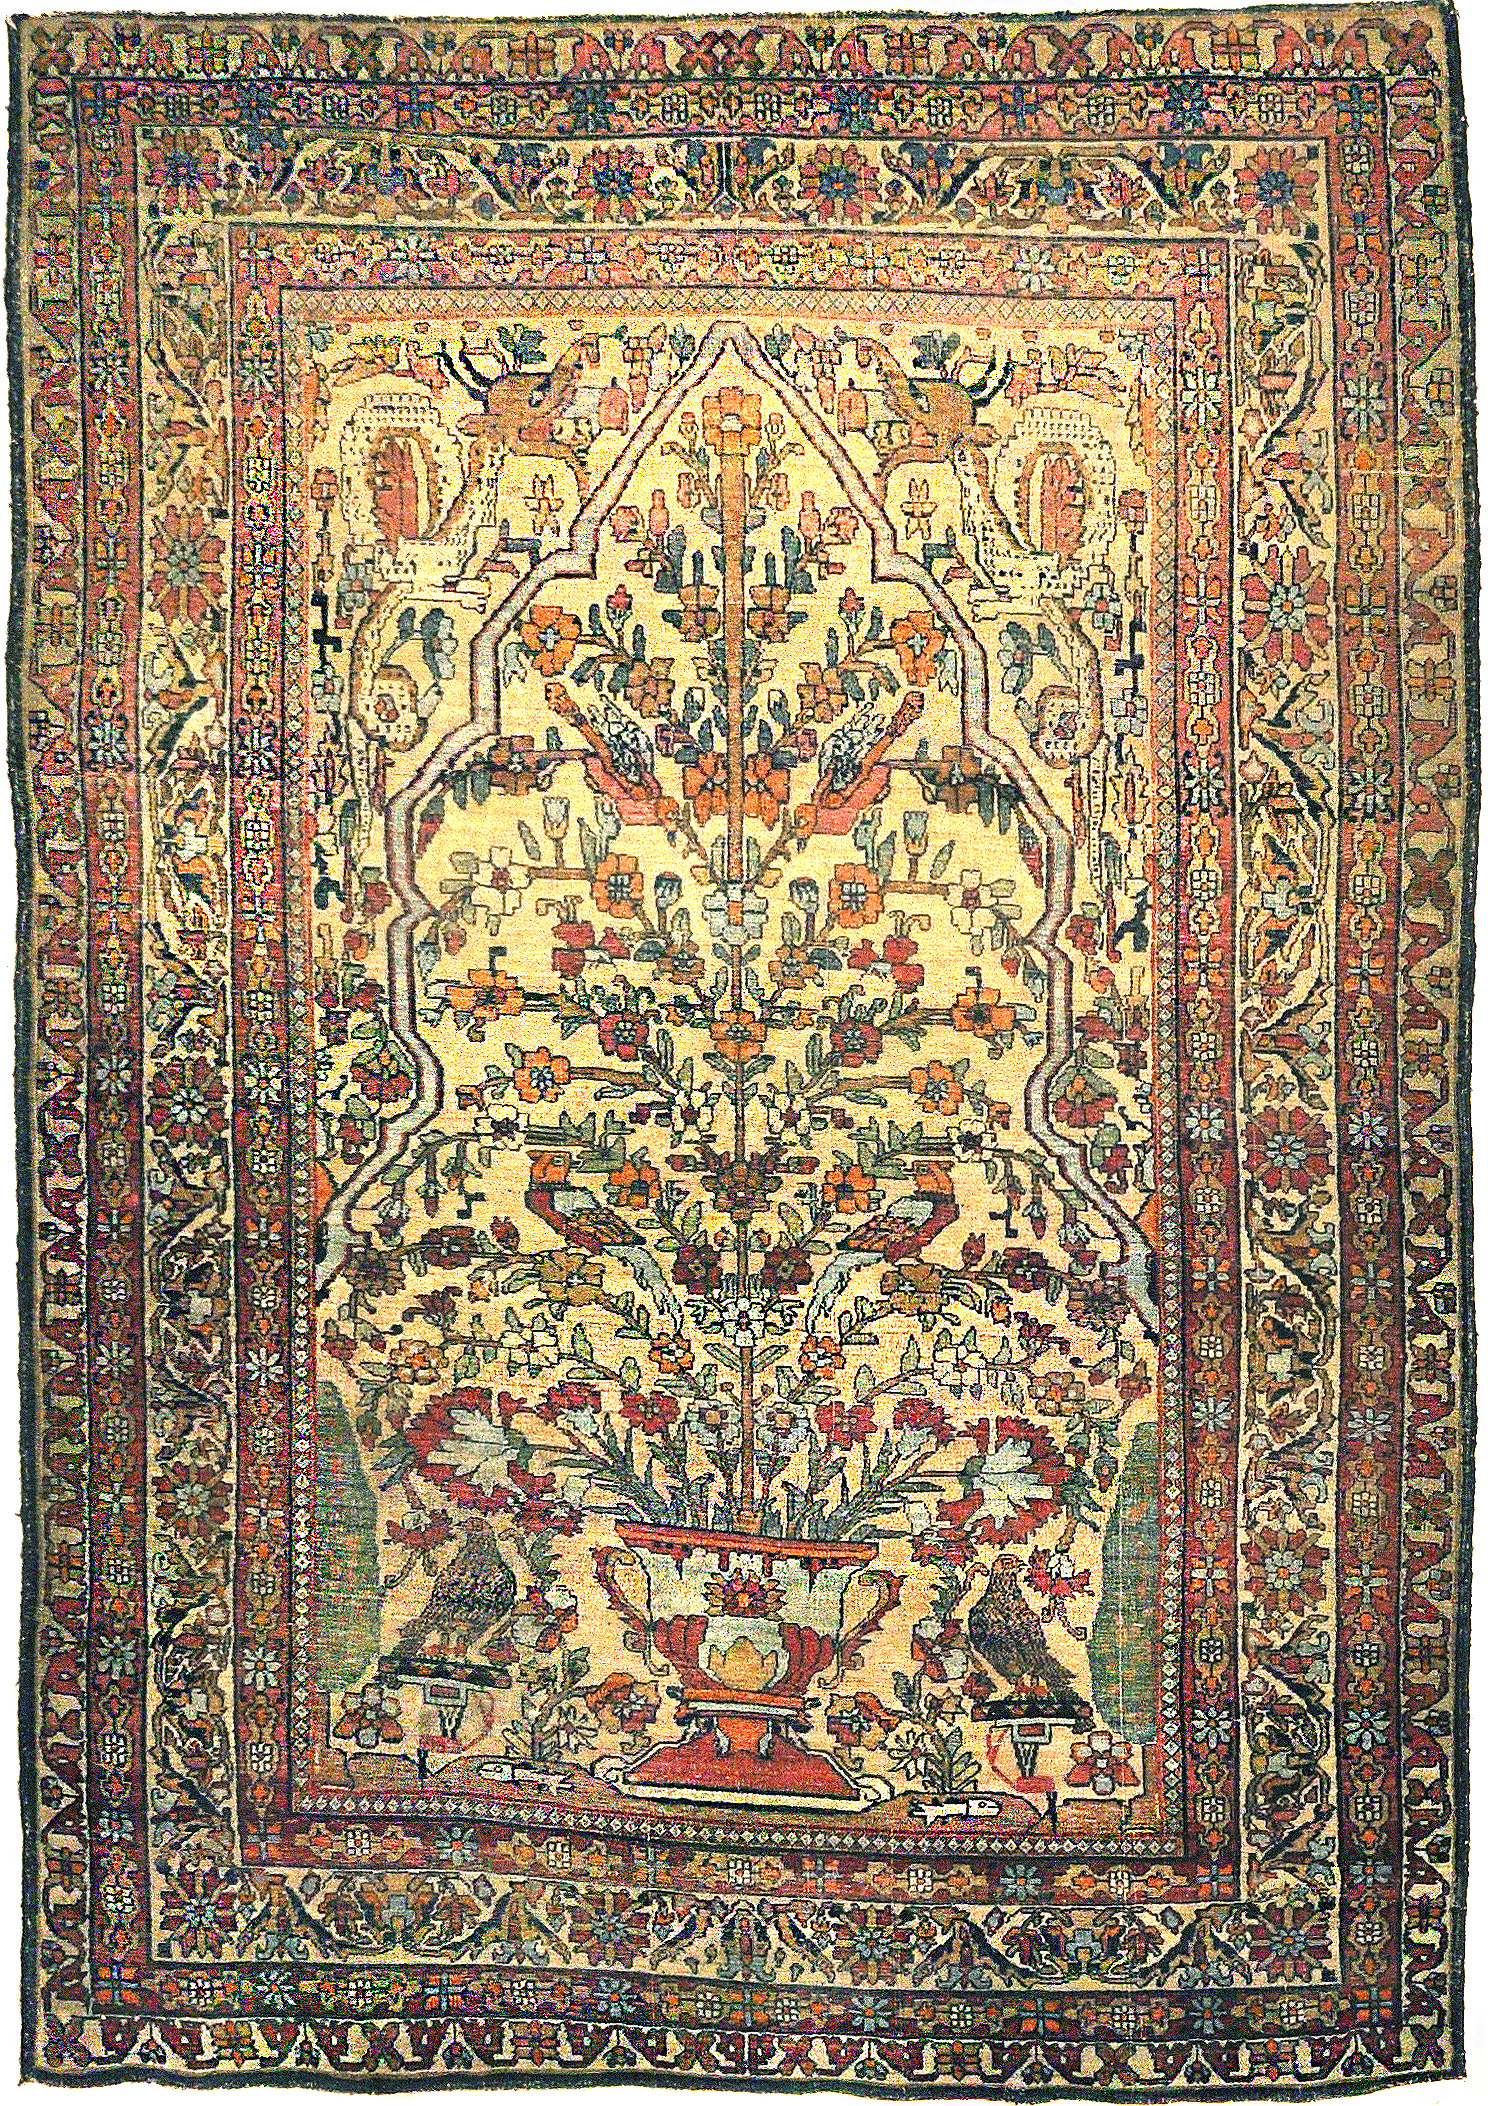 Antique Kermanshah Tree of Life with Mythical Animals. Unique and beautiful with very detailed images of mythical animals. Santa Barbara Rugs and More